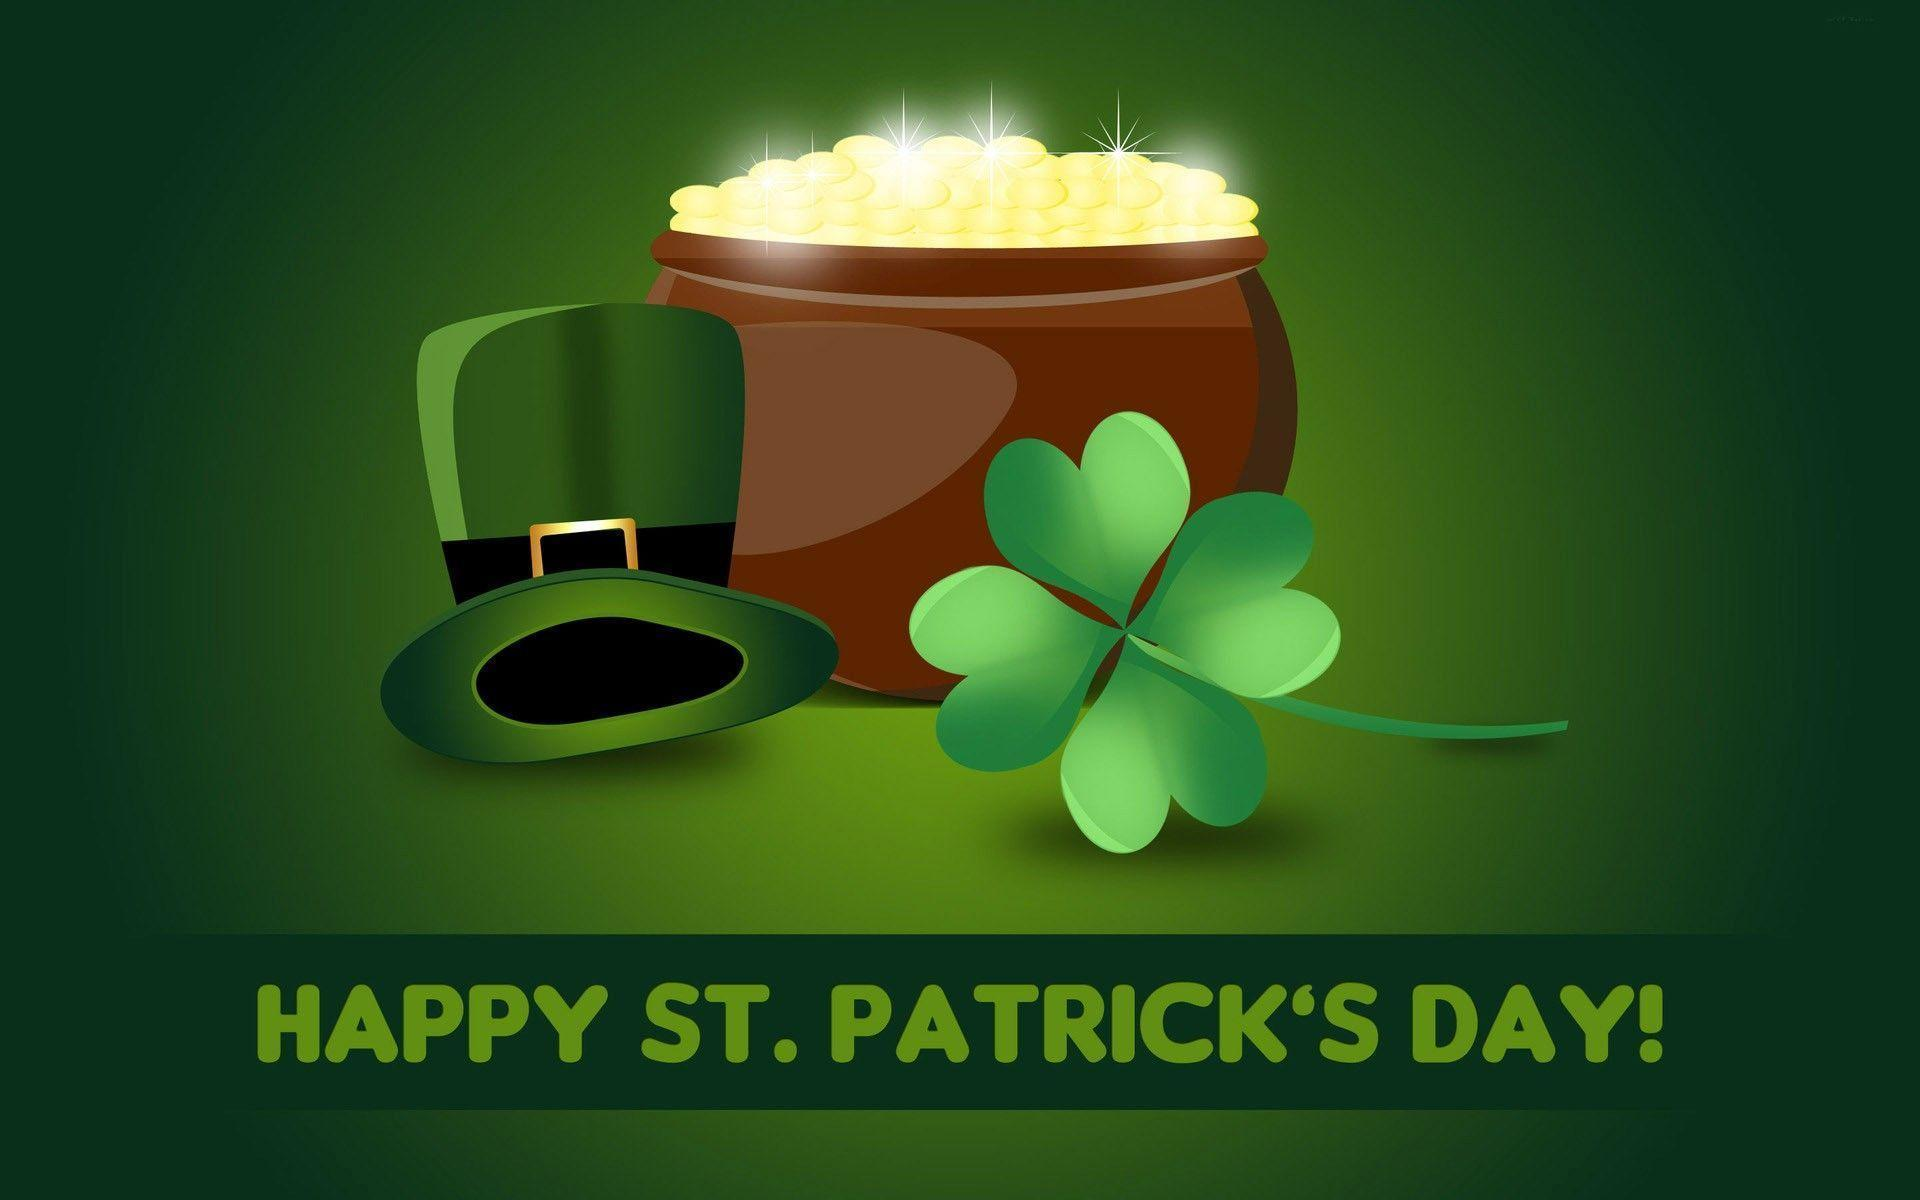 simple st patrick wallpaper - photo #35